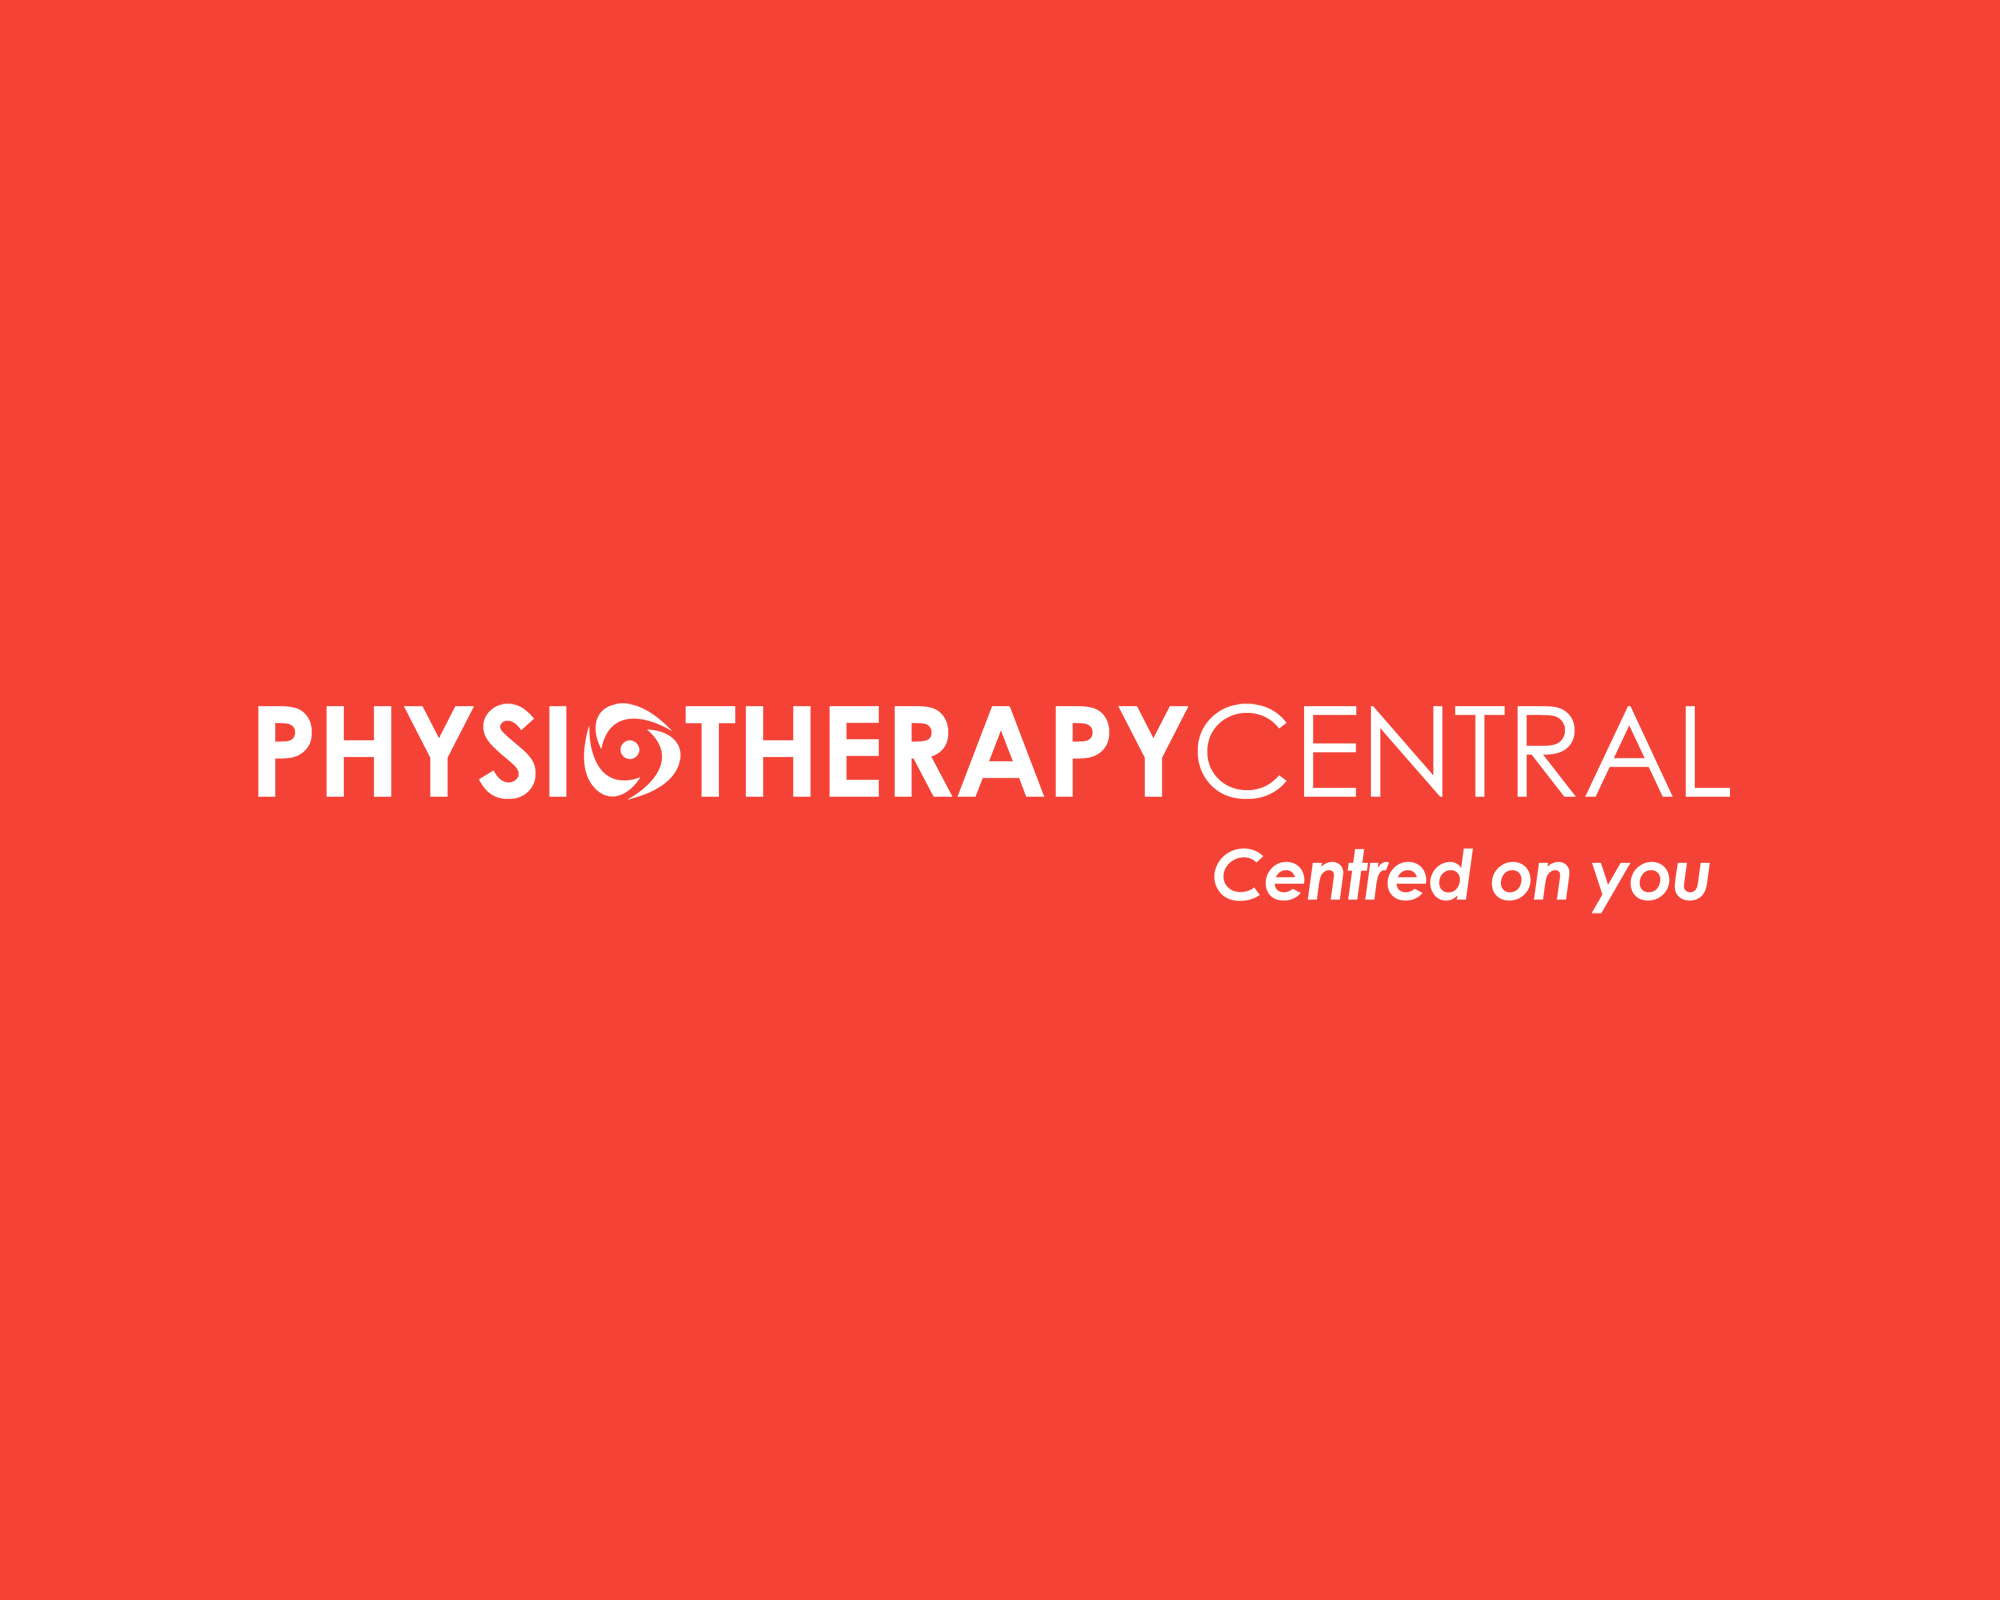 physiotherapy central Logo